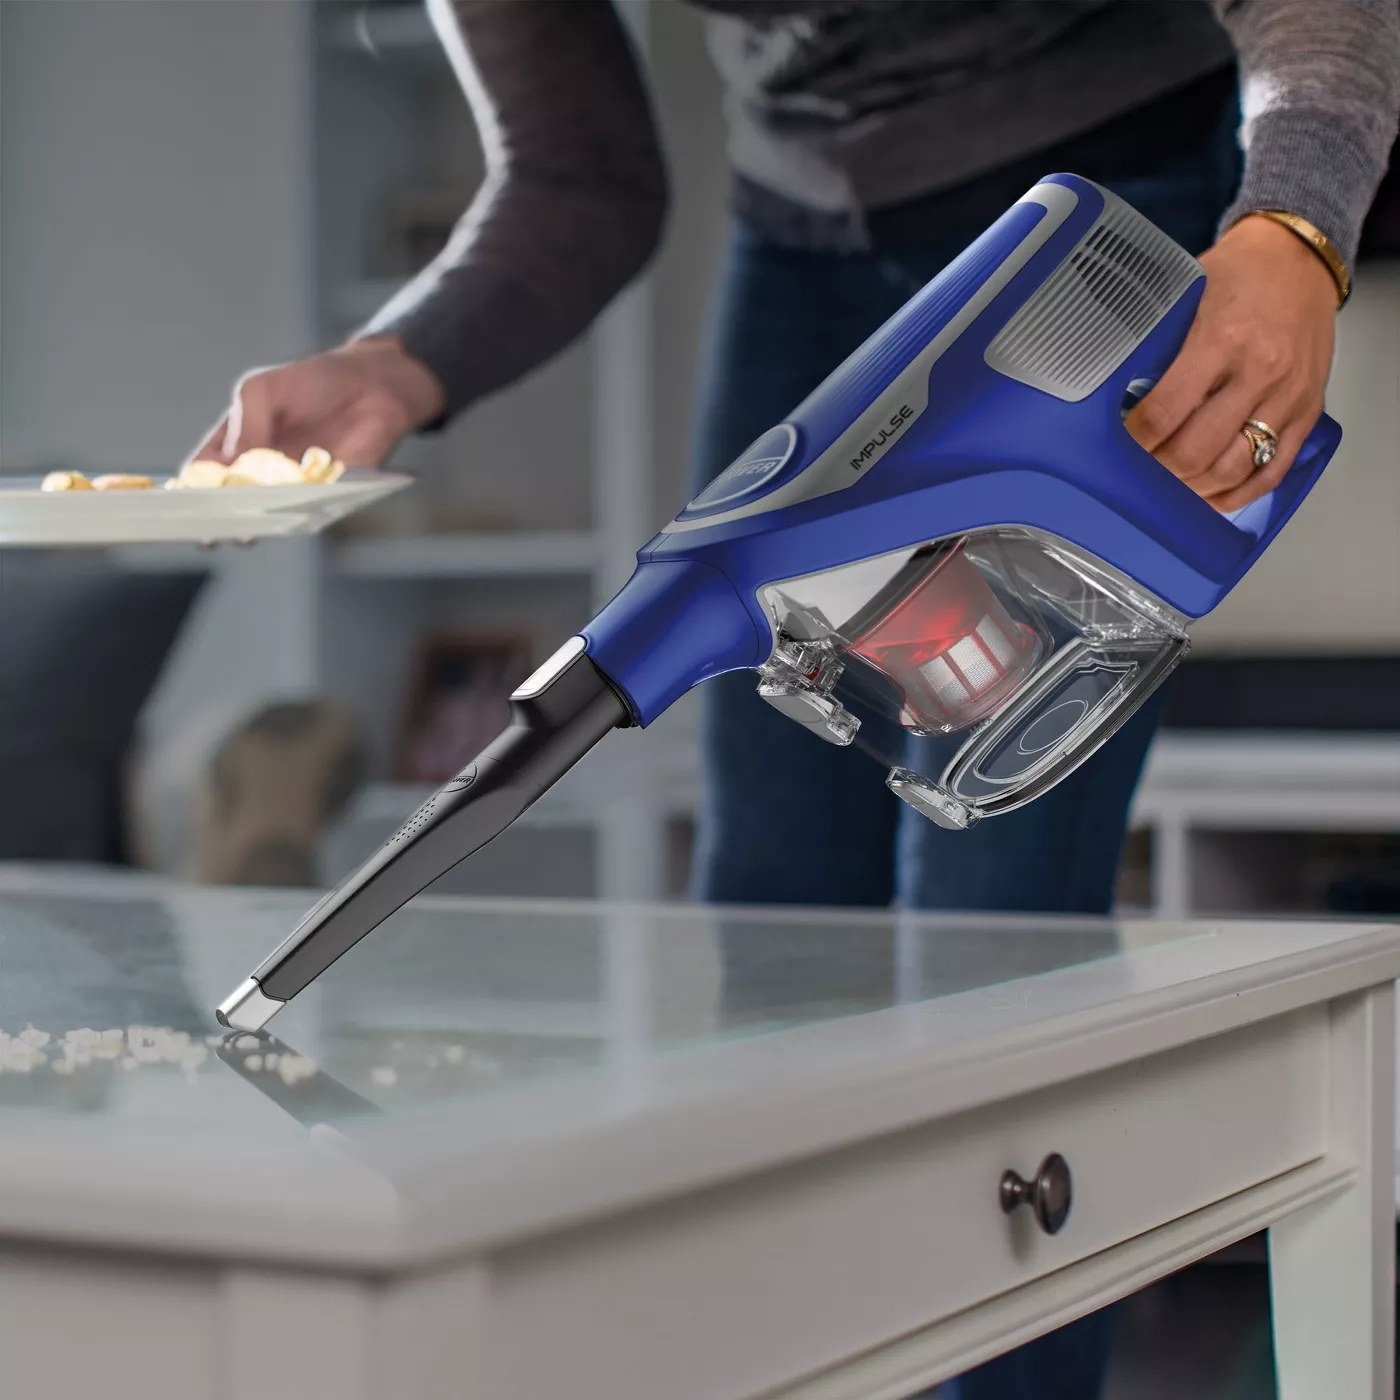 The Hoover Impulse vacuum with a crevice attachment